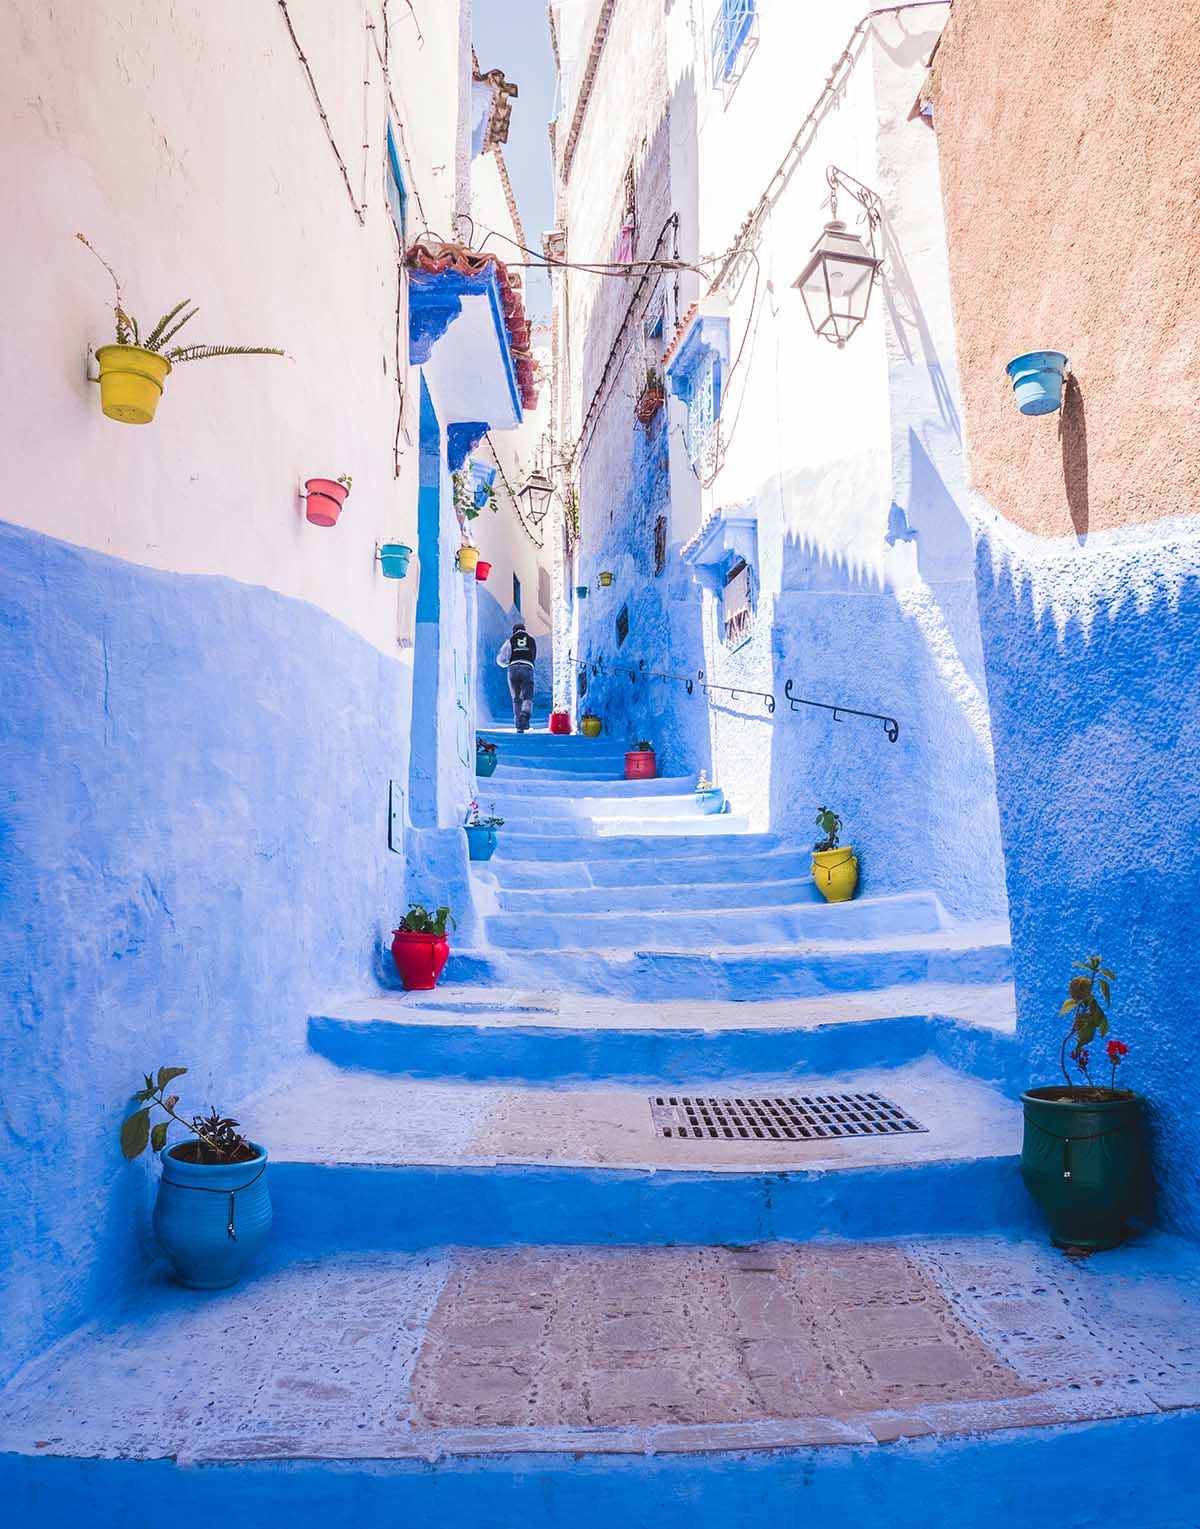 Chefchaouen | photocredit: Doran Erickson